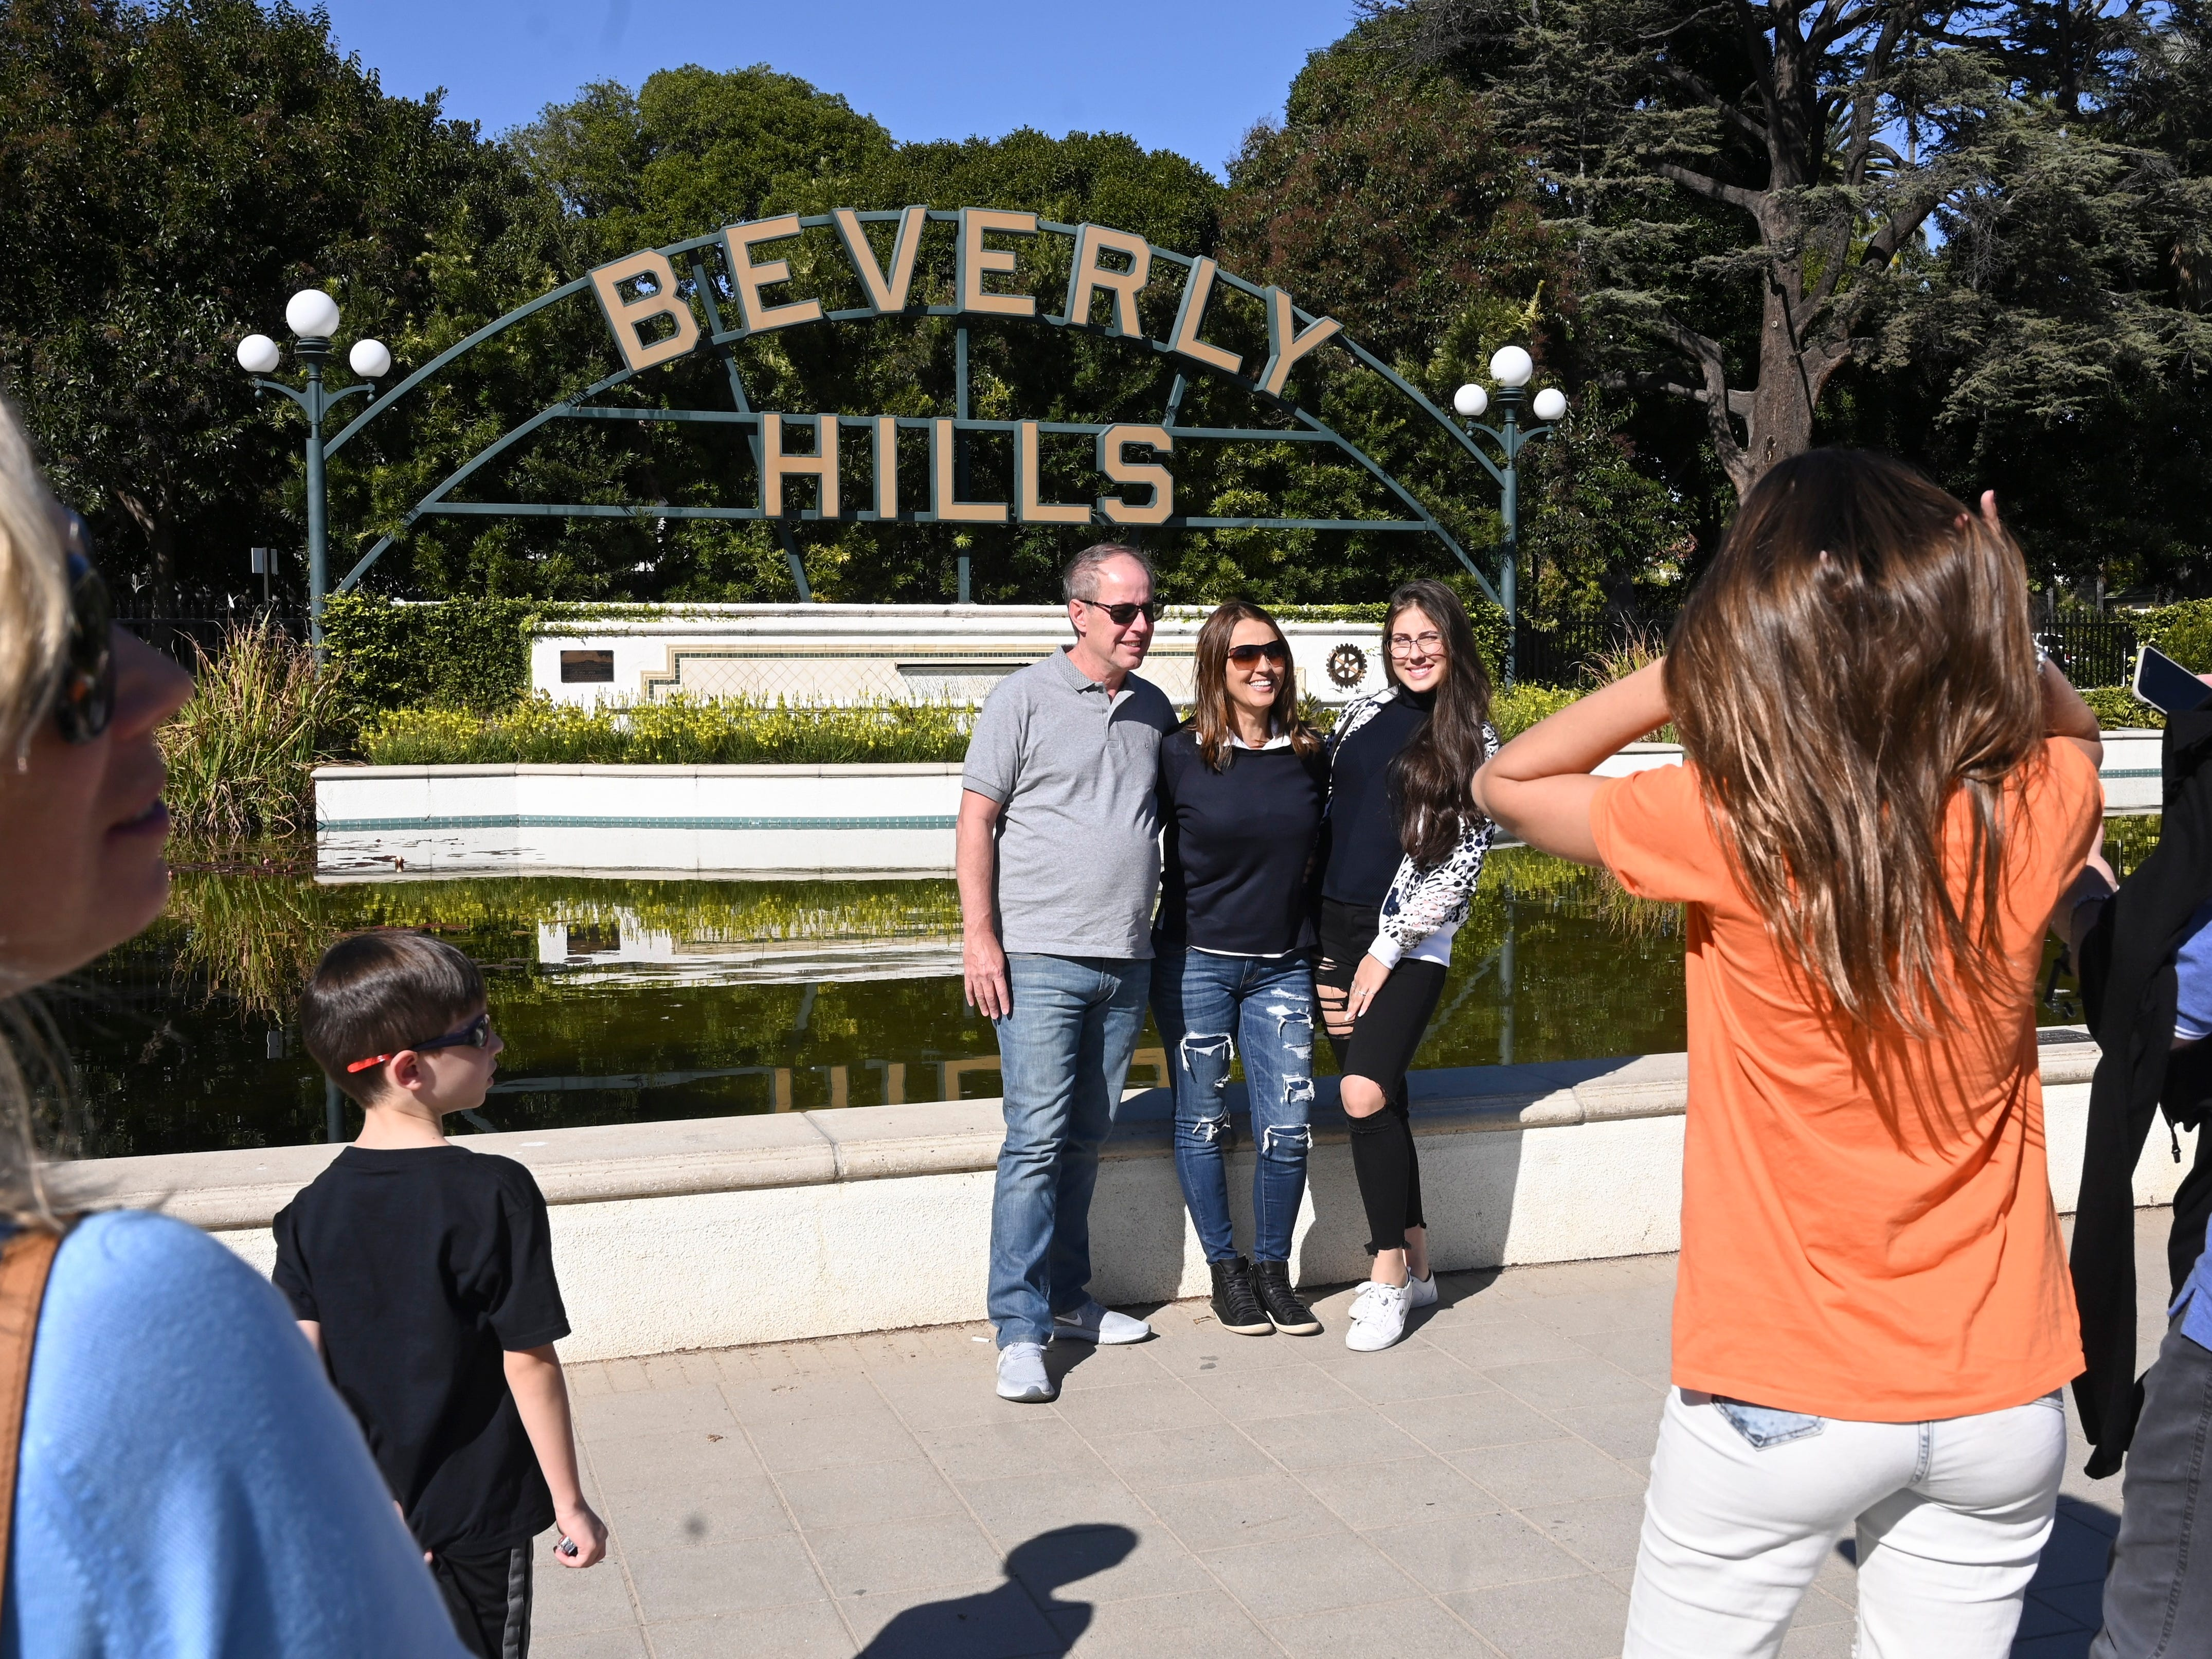 "1/25/19 1:32:23 PM -- Beverly Hills, CA, U.S.A: Tourist line up to take snapshots in front of the ""Beverly Hills"" sign in Beverly Gardens Park on Santa Monica near Rodeo Drive. Photo by Robert Hanashiro, USA TODAY staff